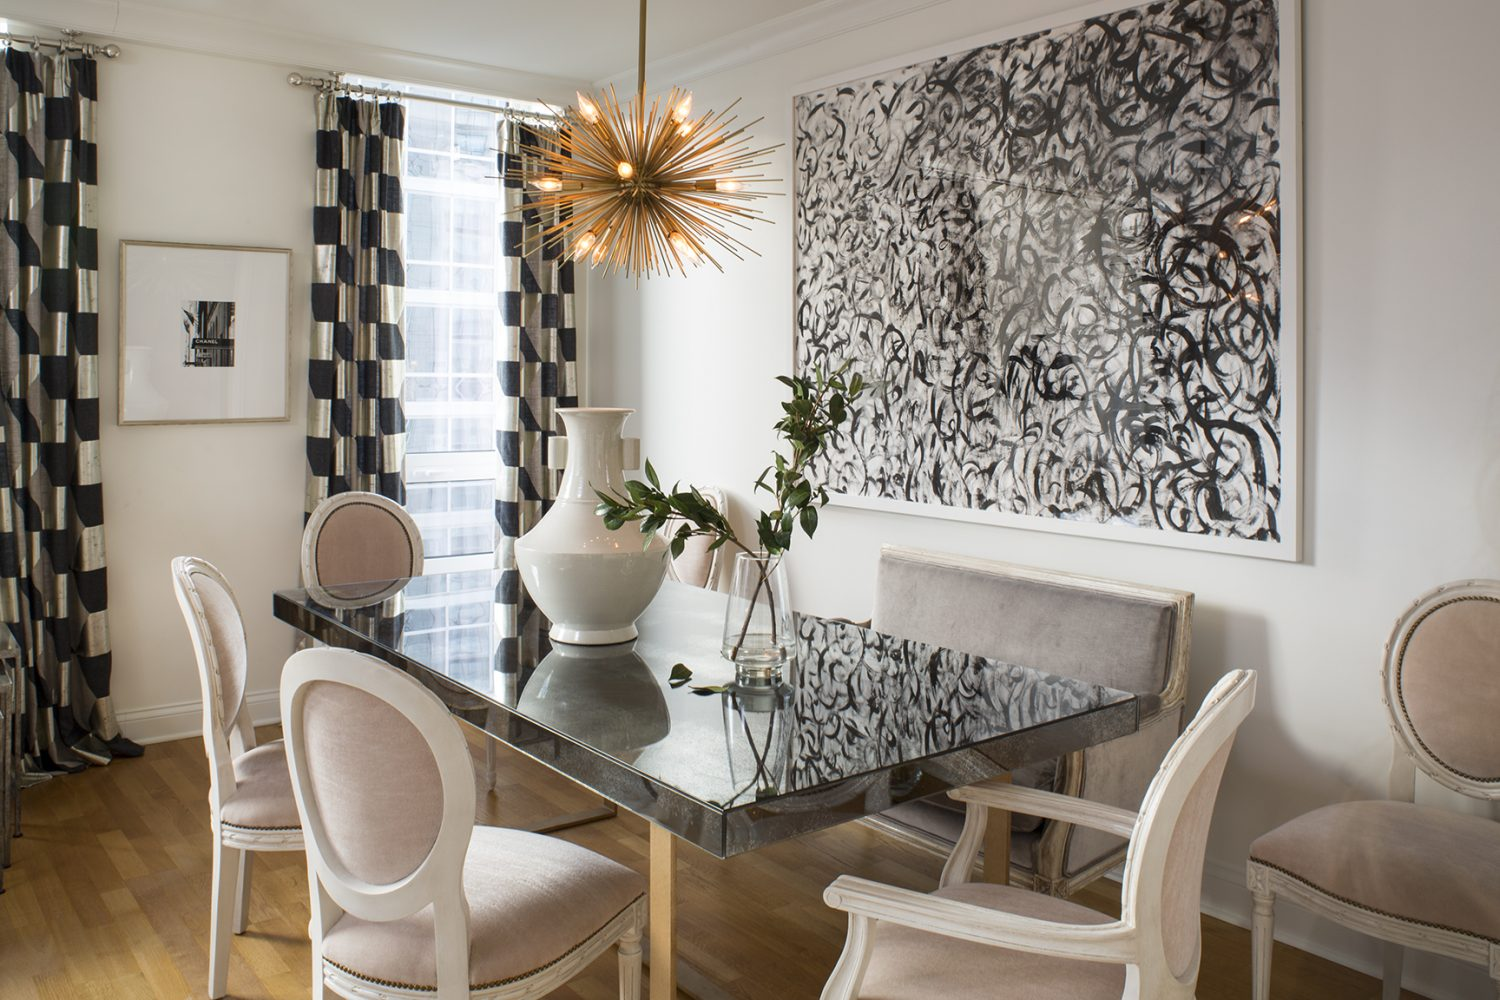 wendy labrum Wendy Labrum Interiors: A Passion Born in Europe Yvonne DiningRoomH LR scaled